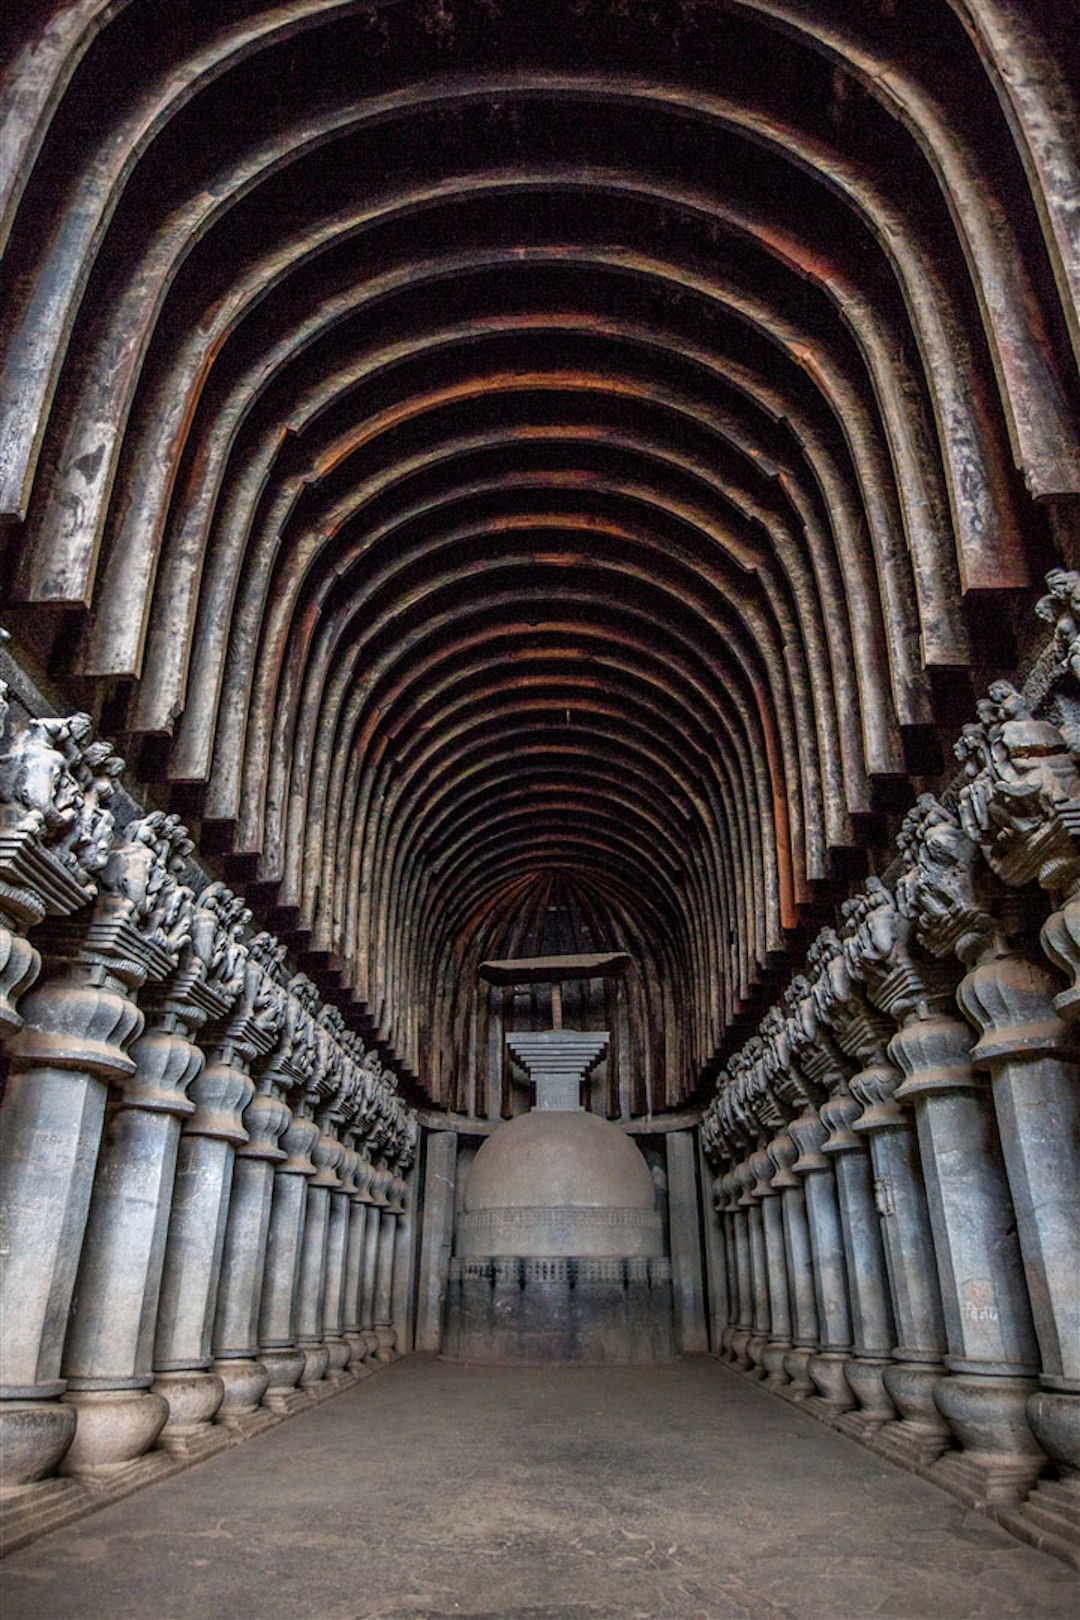 Chaitya (prayer hall) at Bhaja Caves